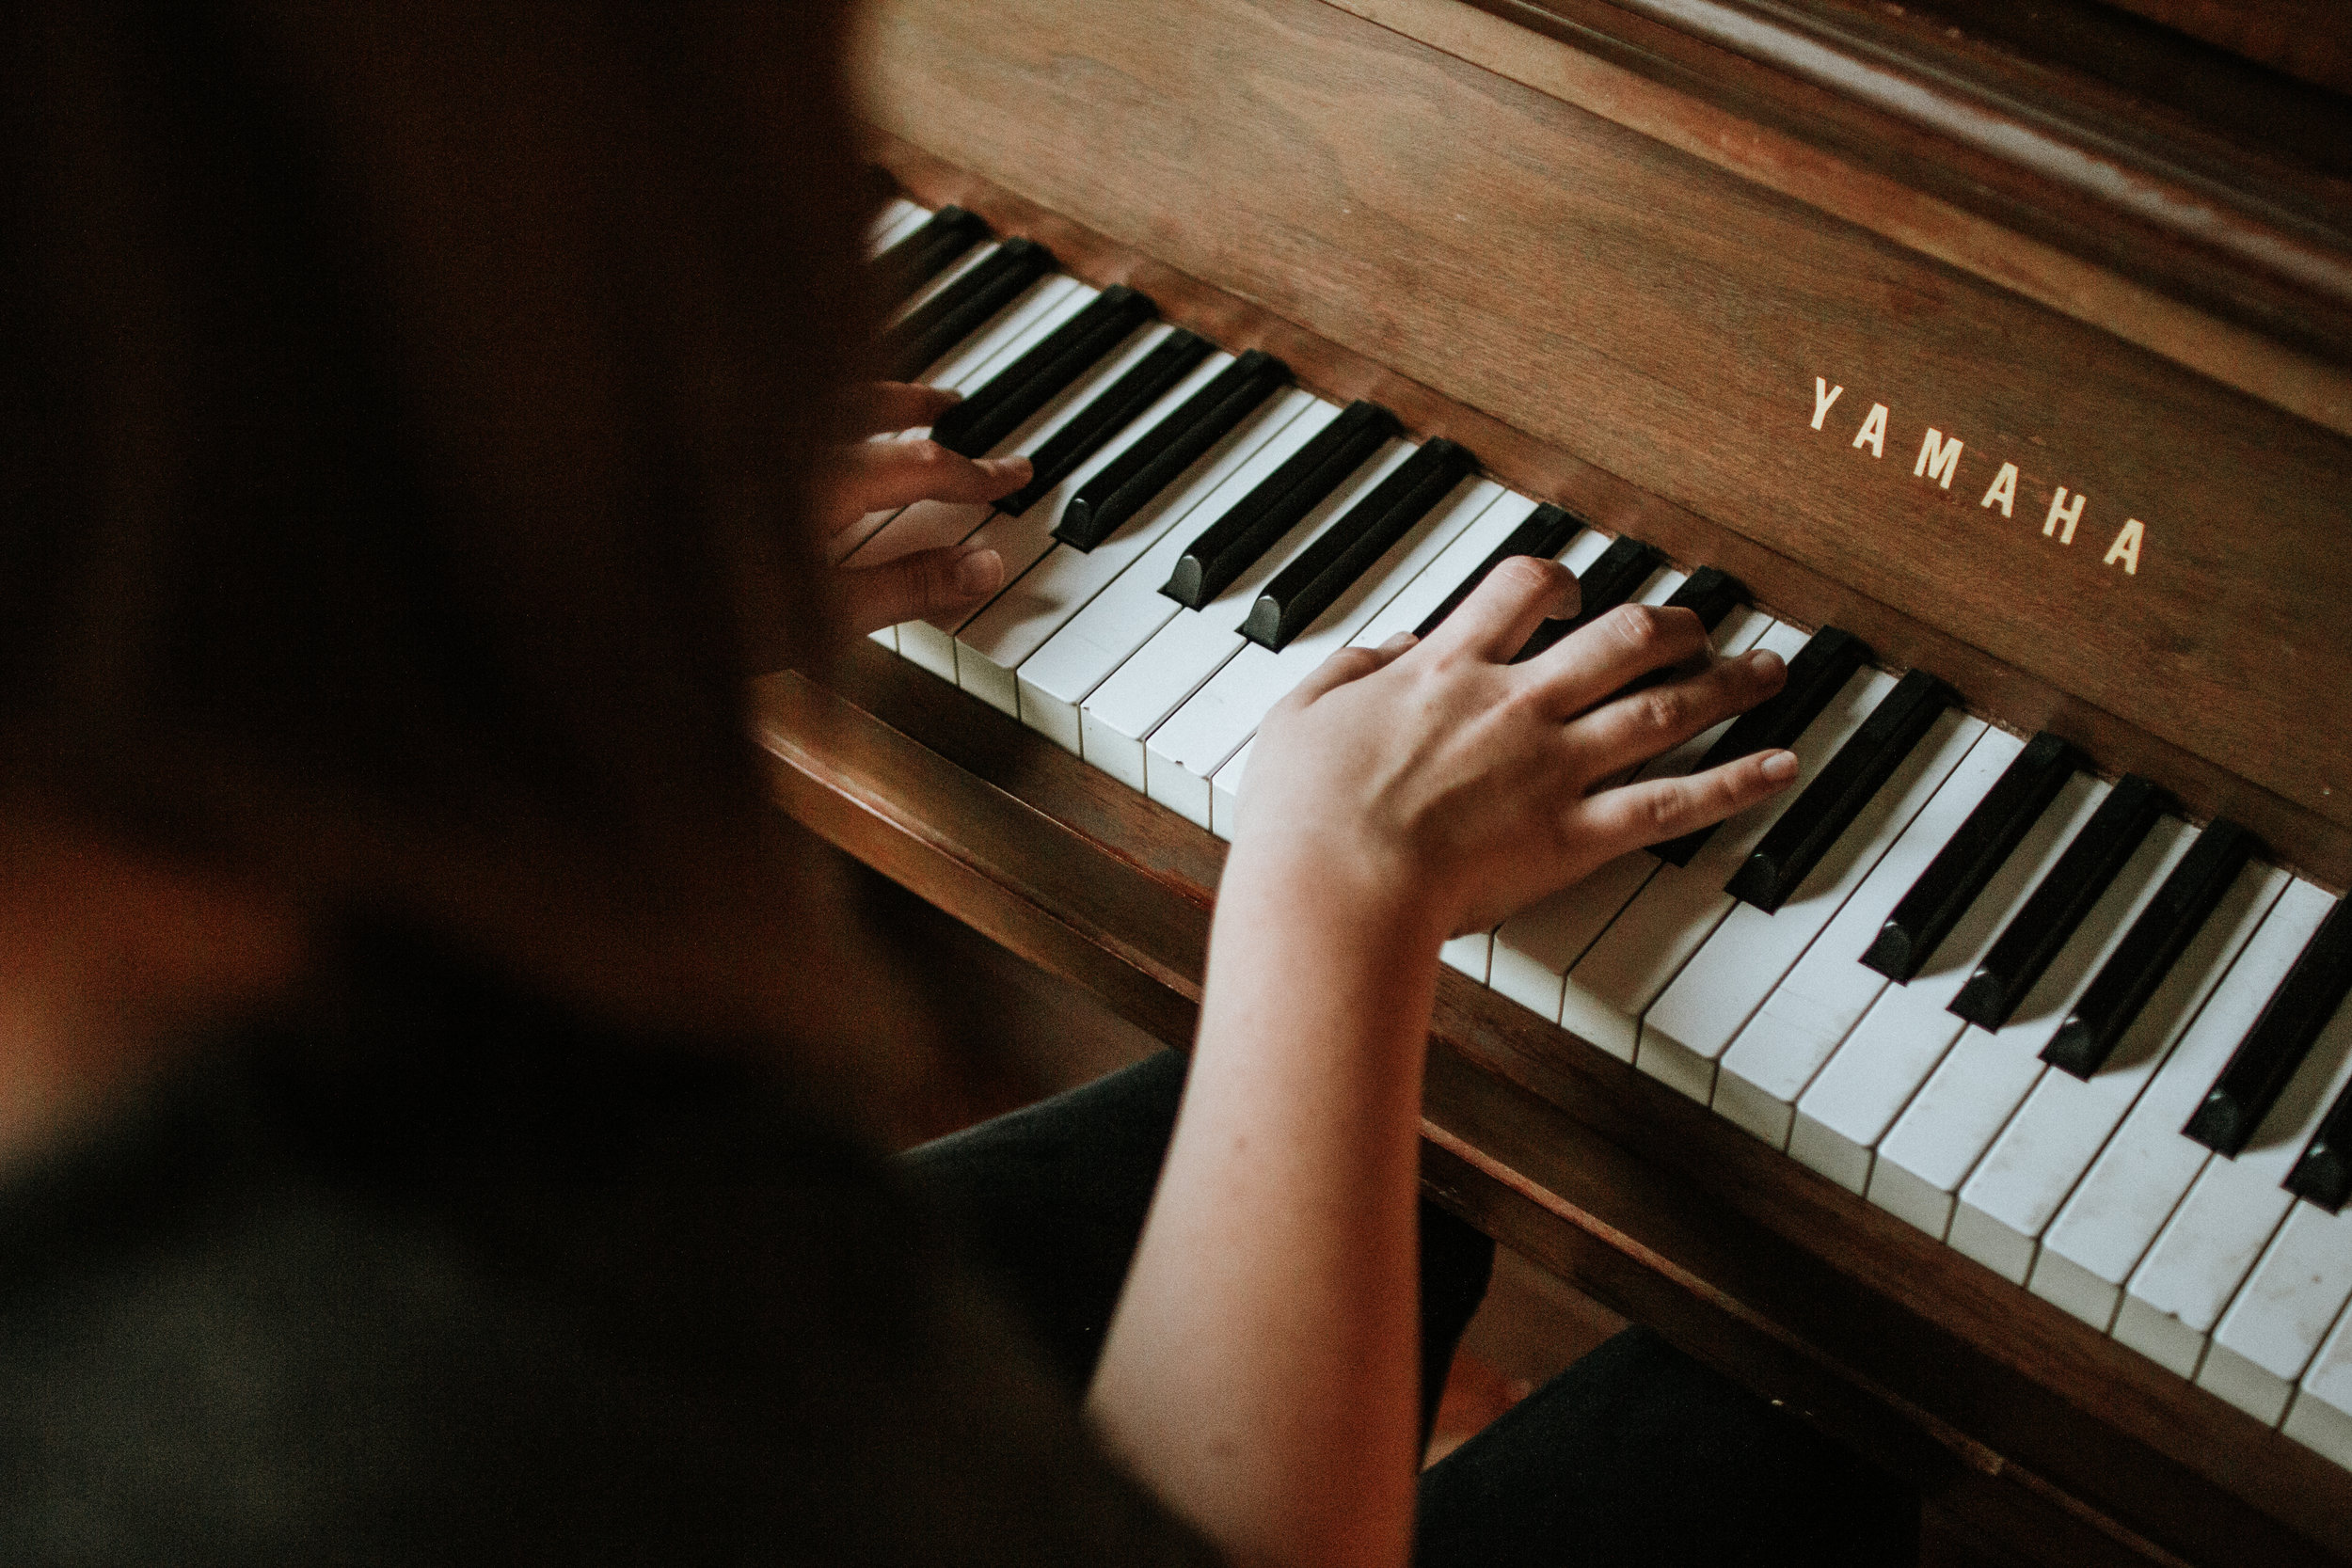 Select a Teacher - Search for piano teachers near you in London and across the UK.